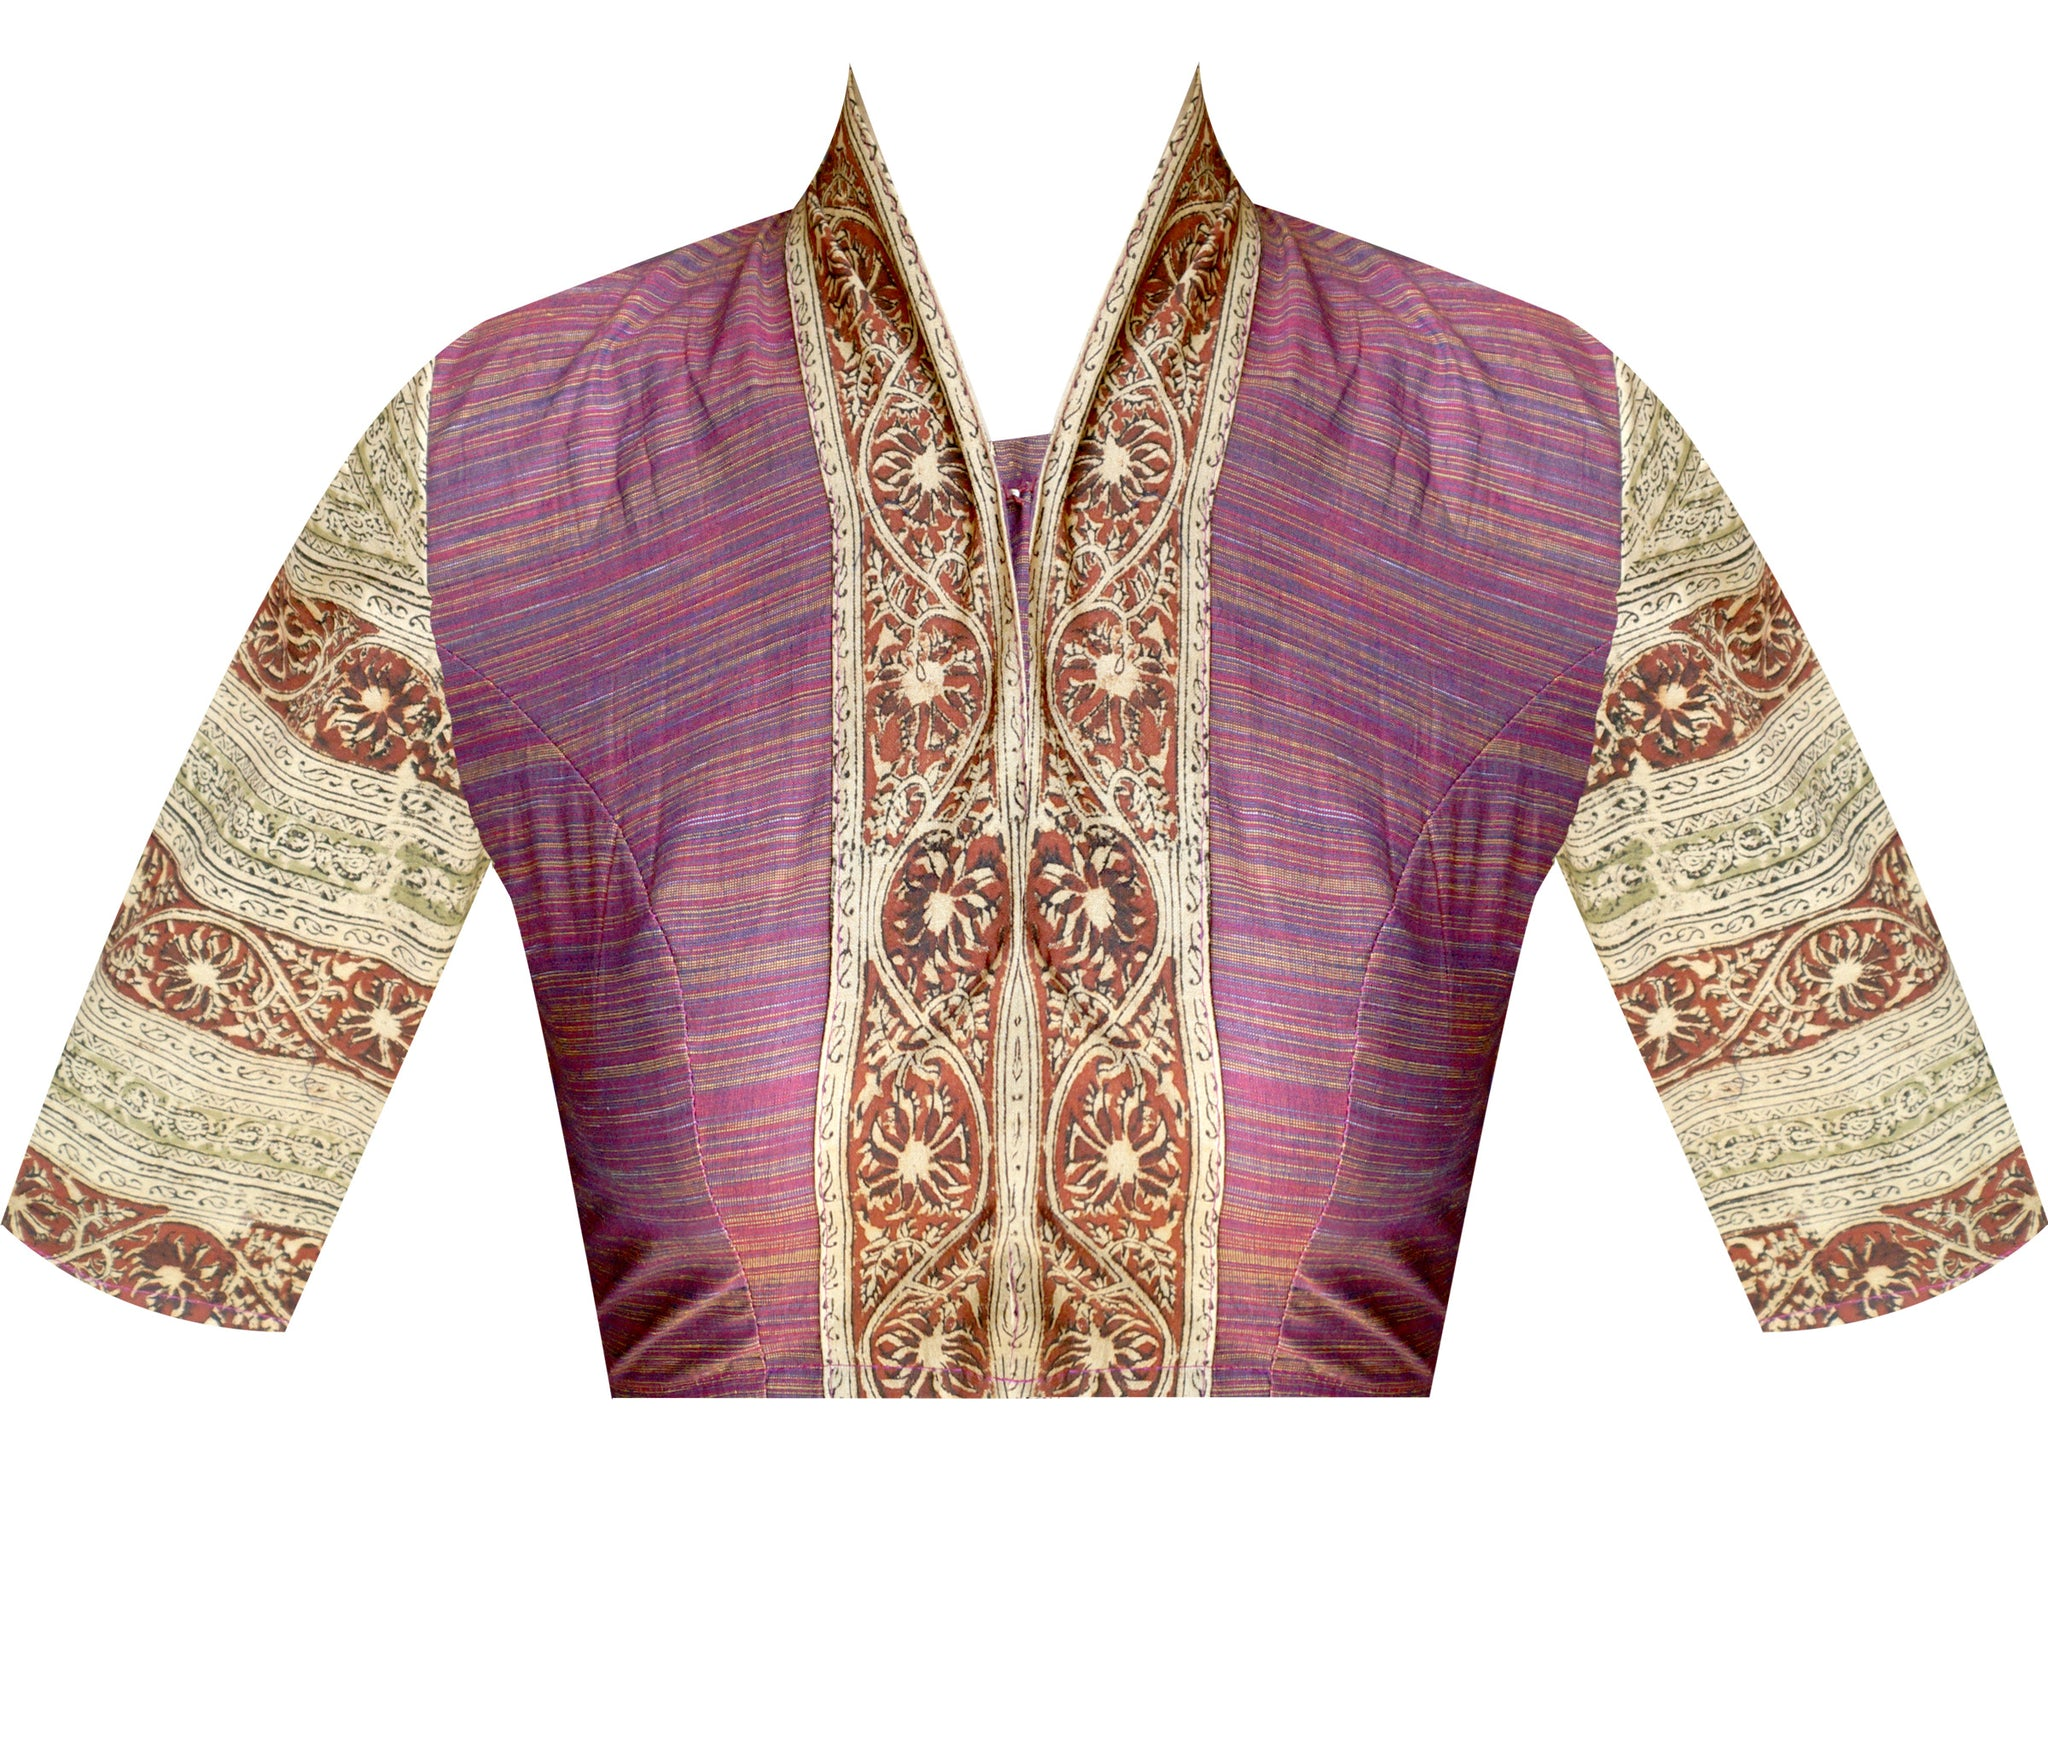 Collar Neck South Cotton and Kalamkari Elbow Sleeves Readymade Blouse